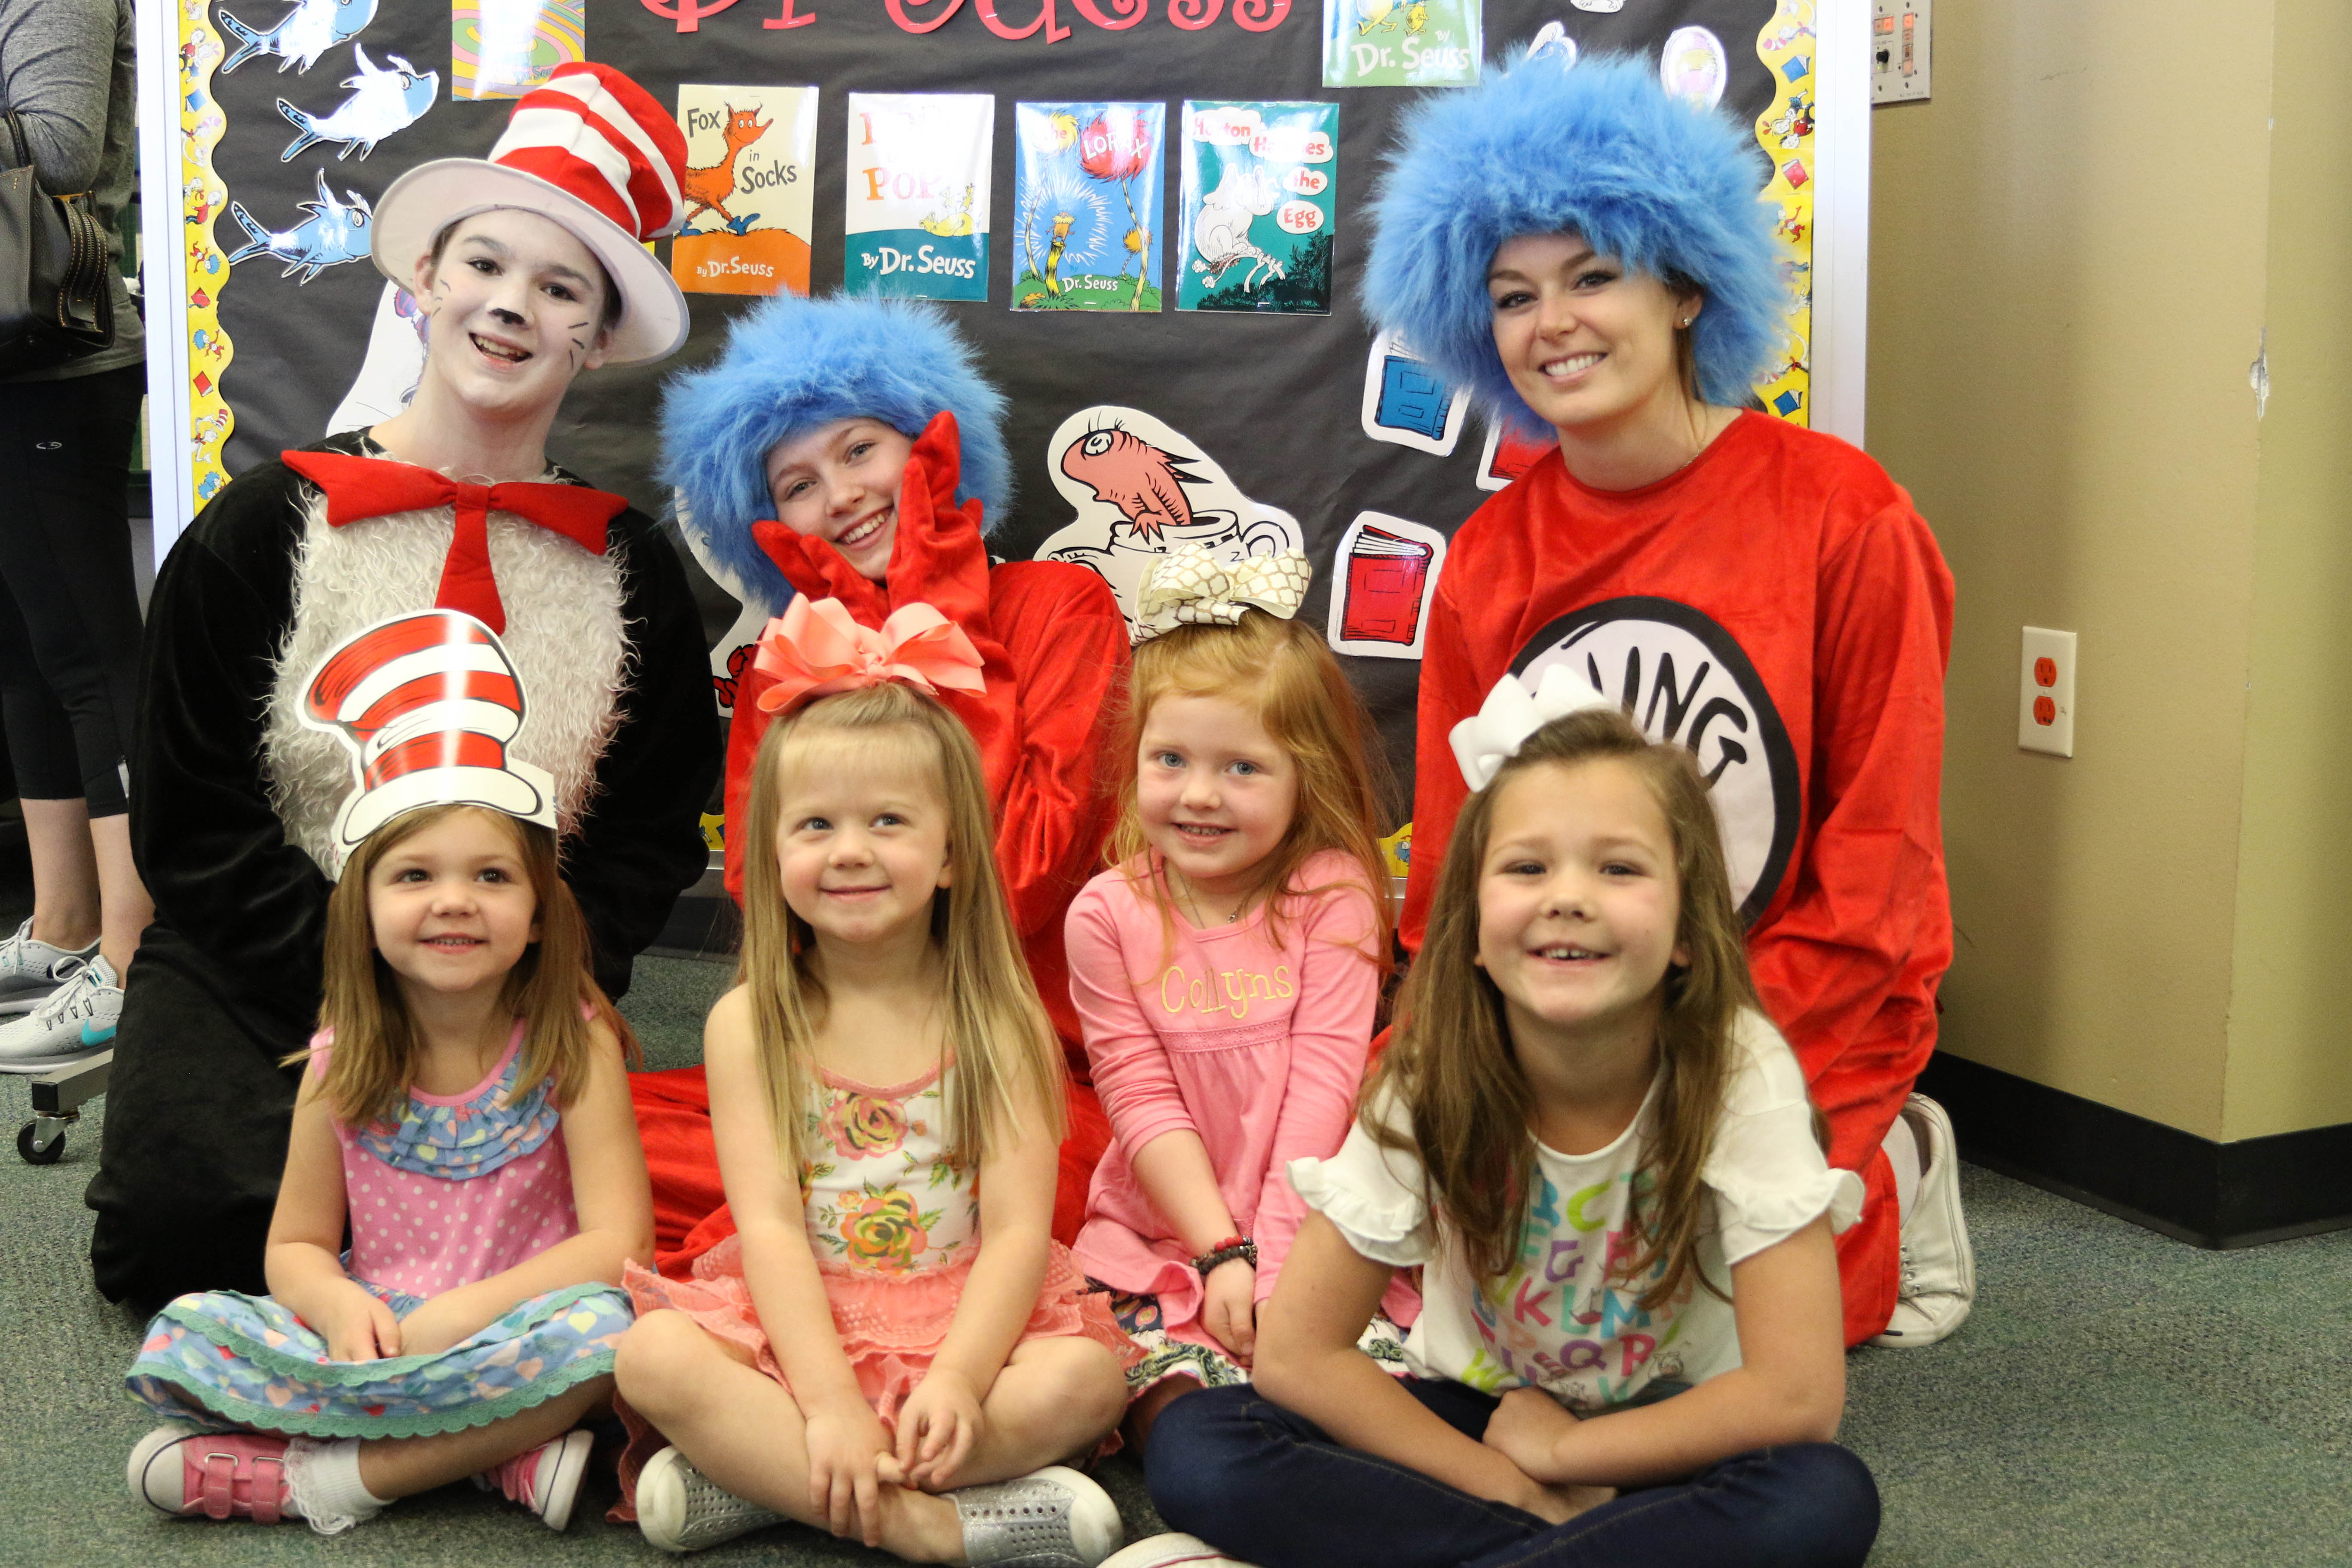 Dr. Suess turns 114 at the Prosper Community Library